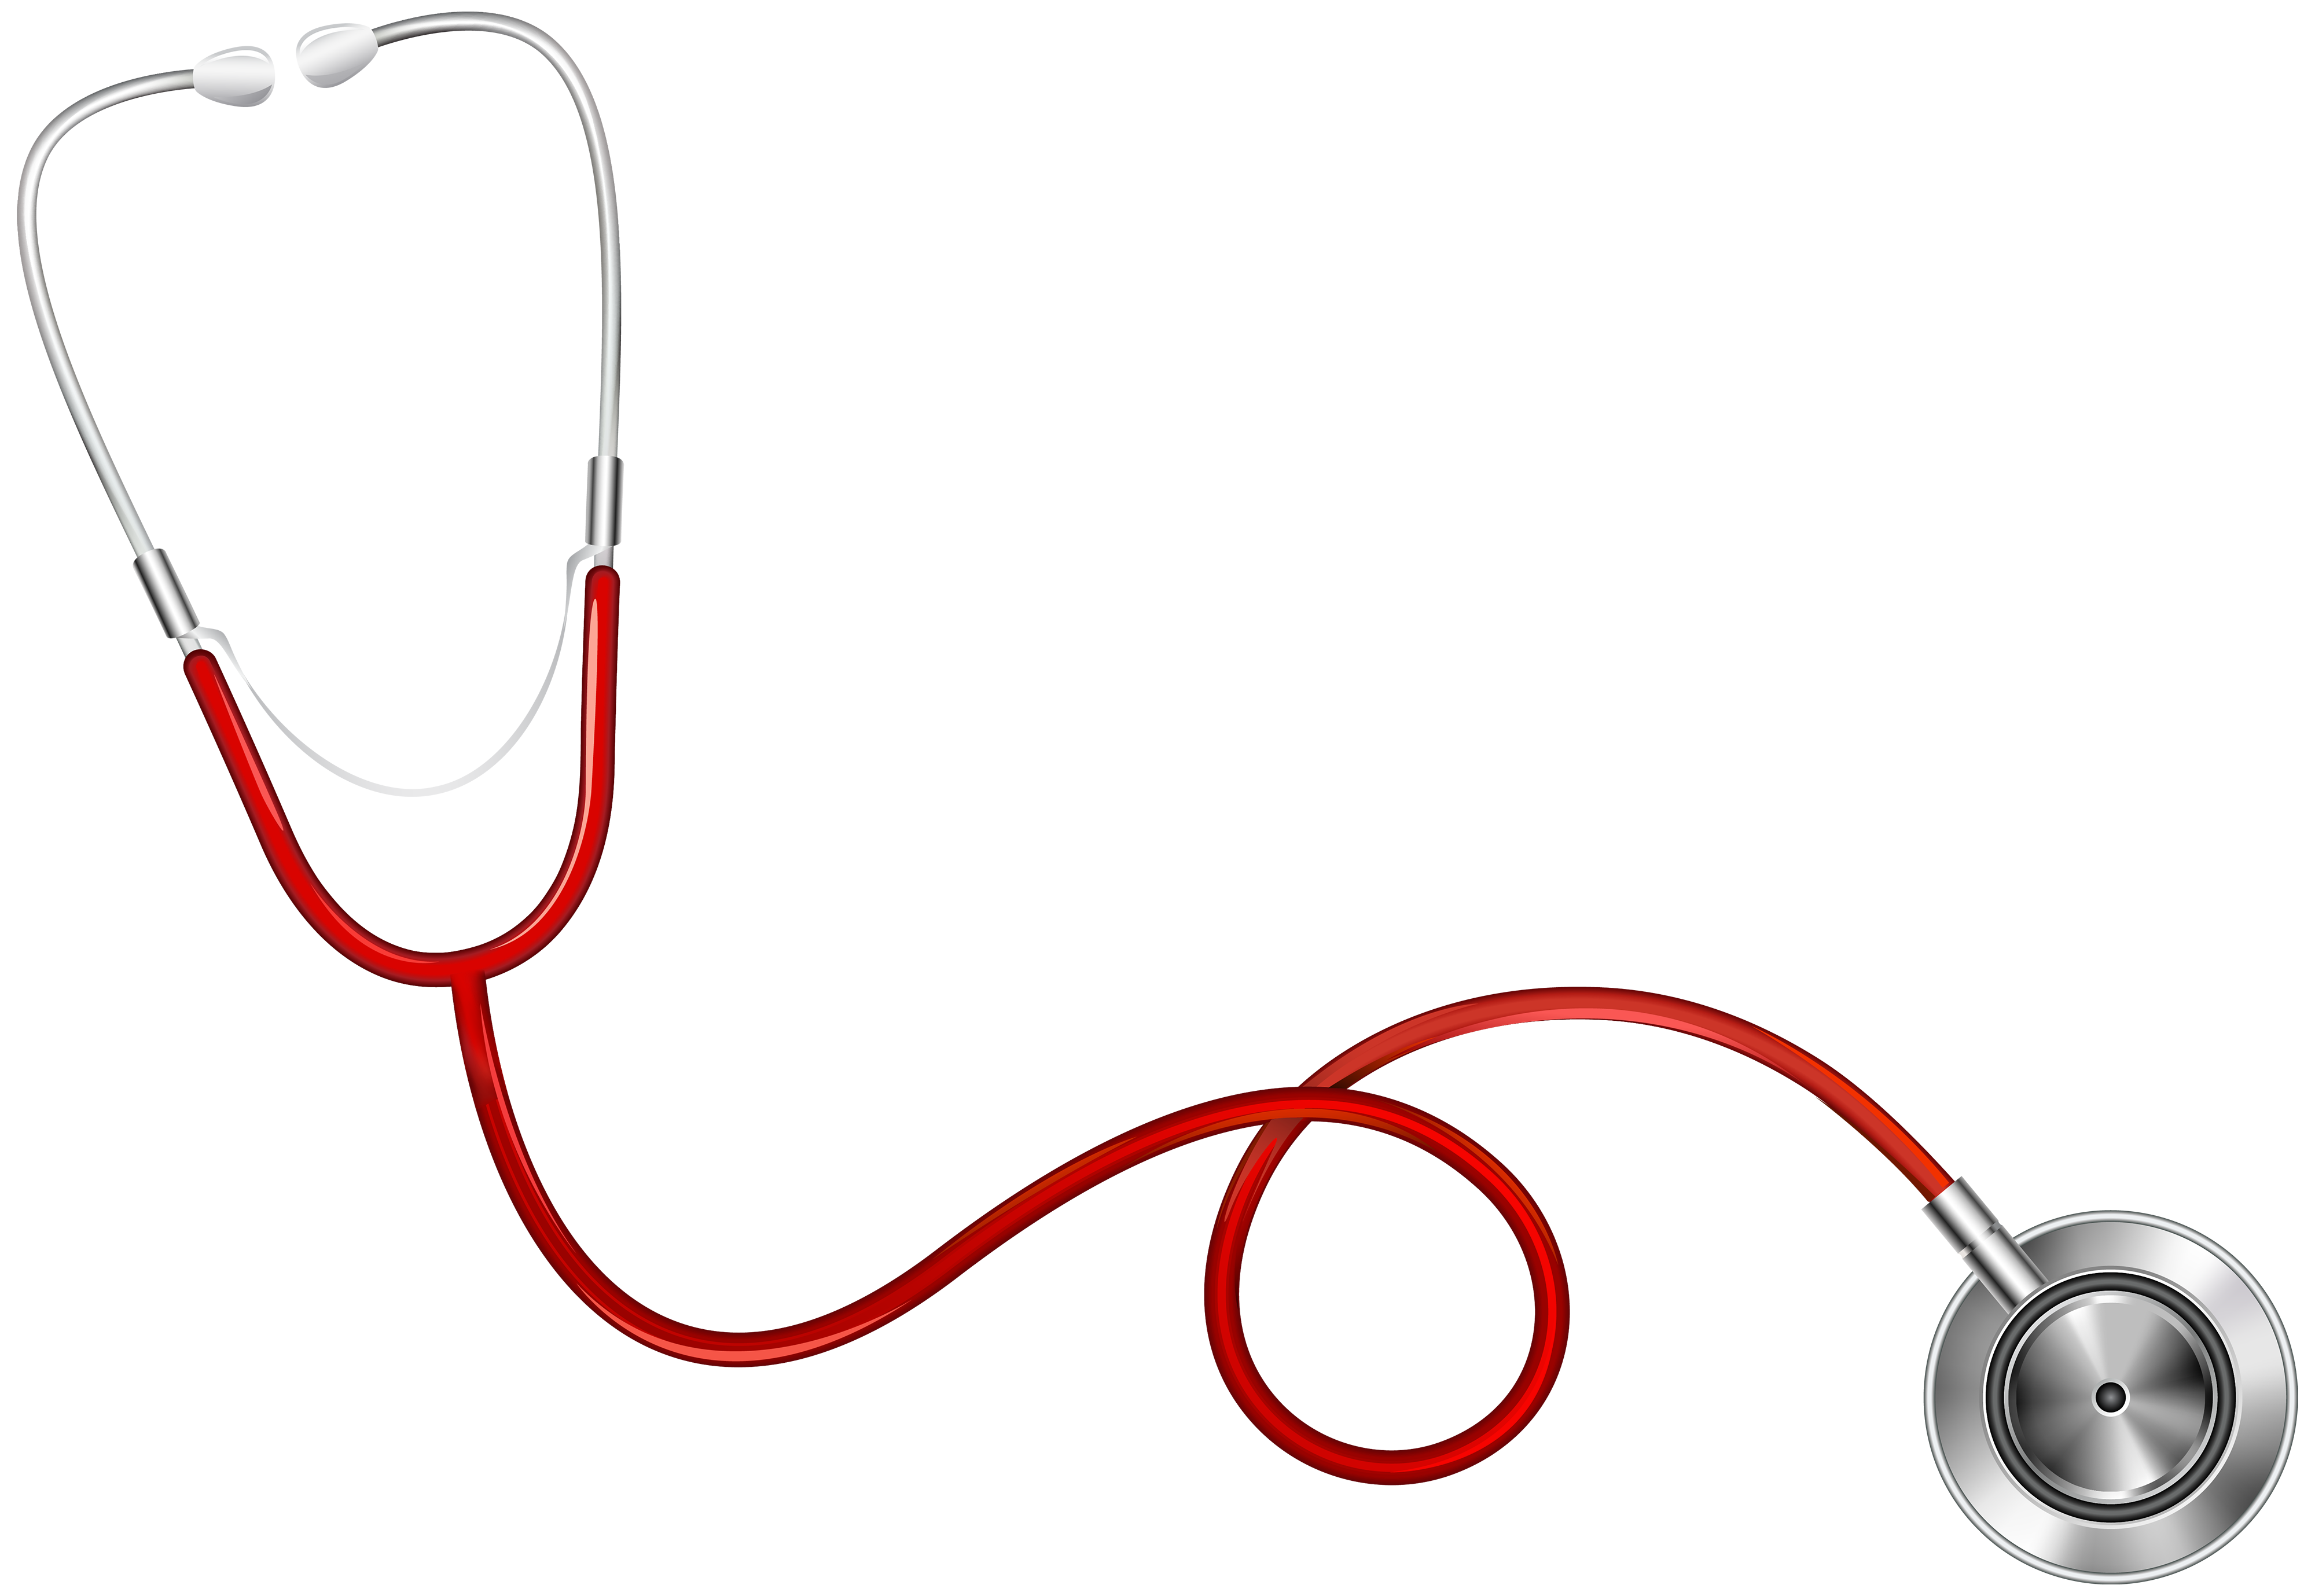 svg royalty free library Doctors clipart. Stethoscope png best web